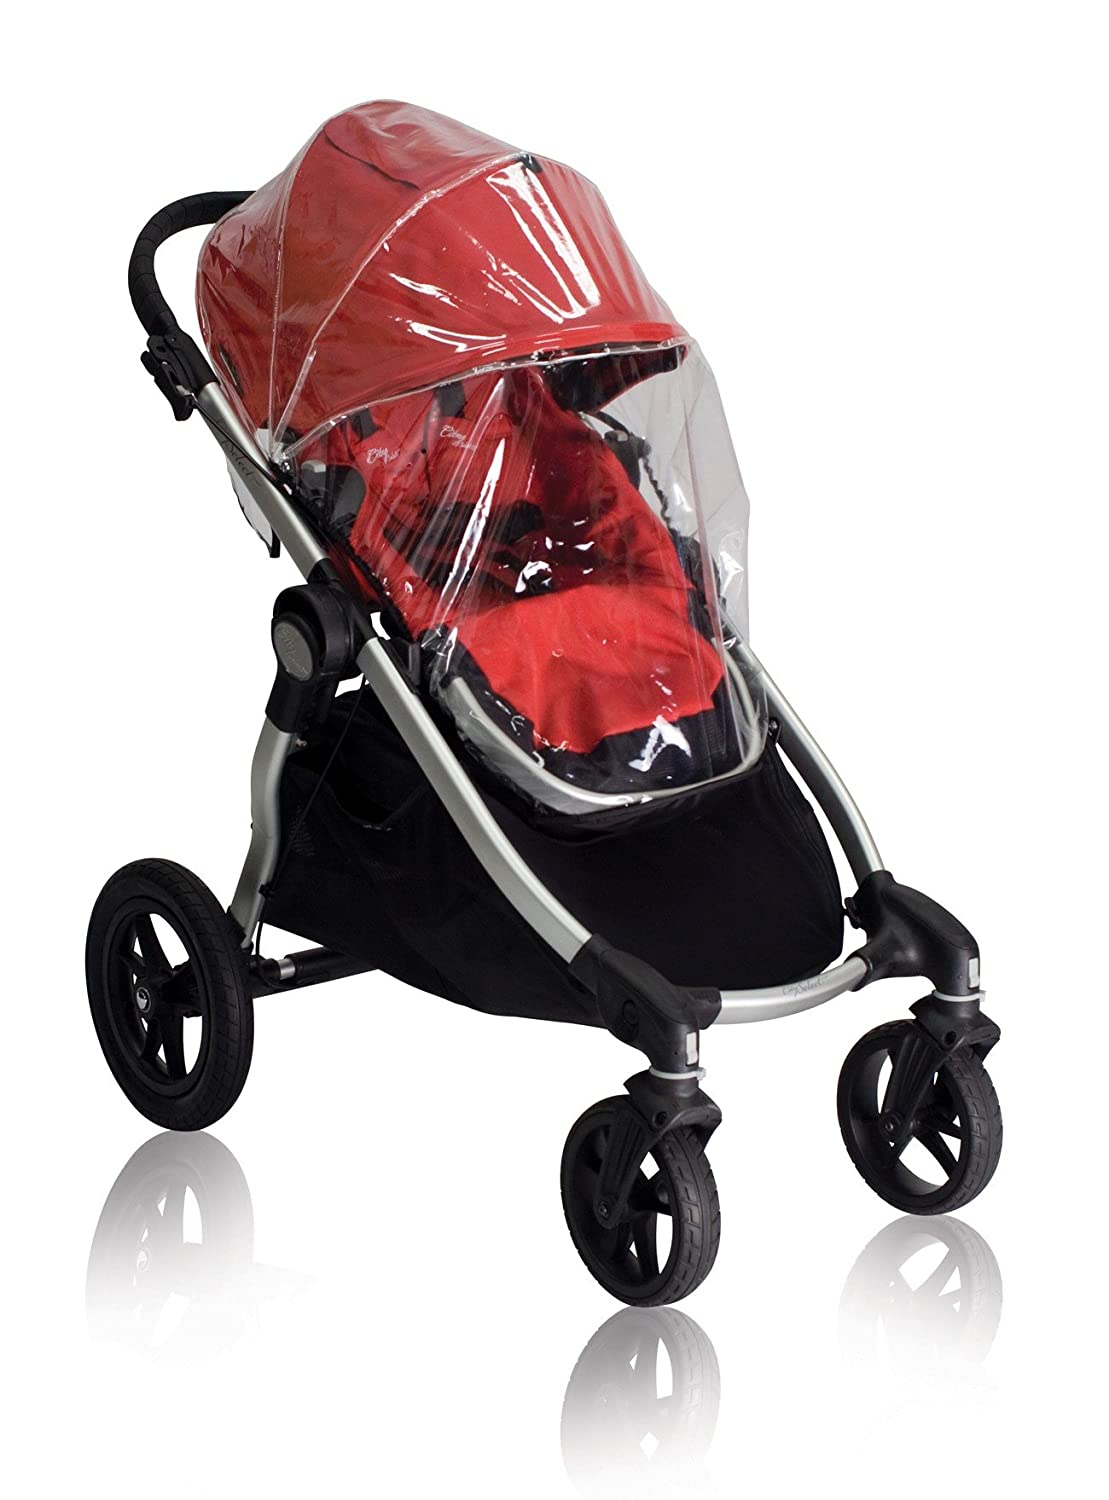 Baby Jogger Rain Canopy For City Select Seat Discontinued by Manufacturer